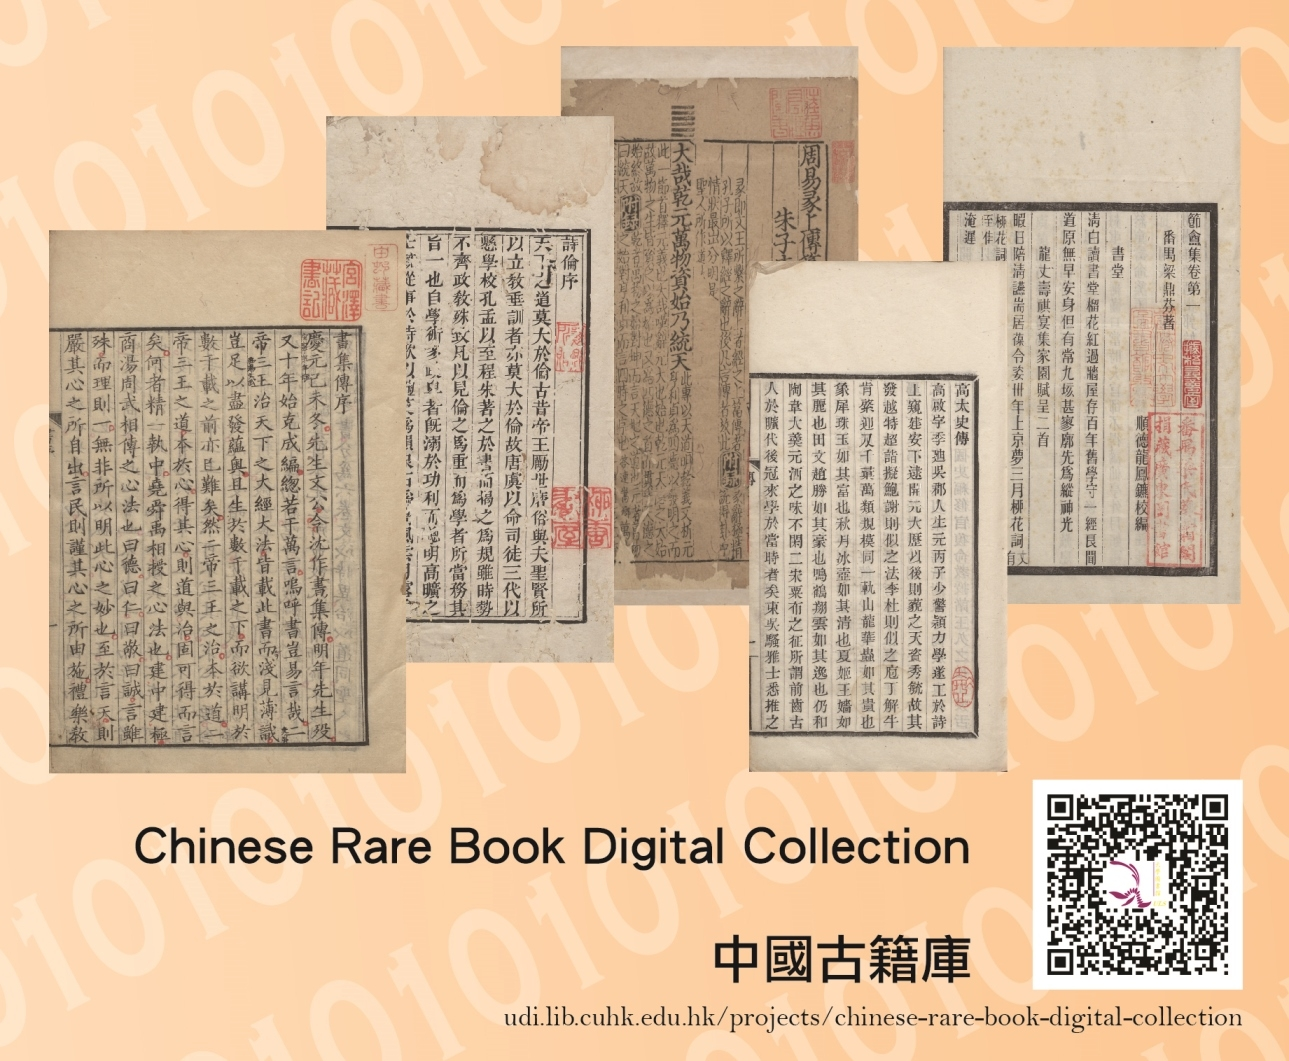 Digital images of Chinese Rare Book Collection